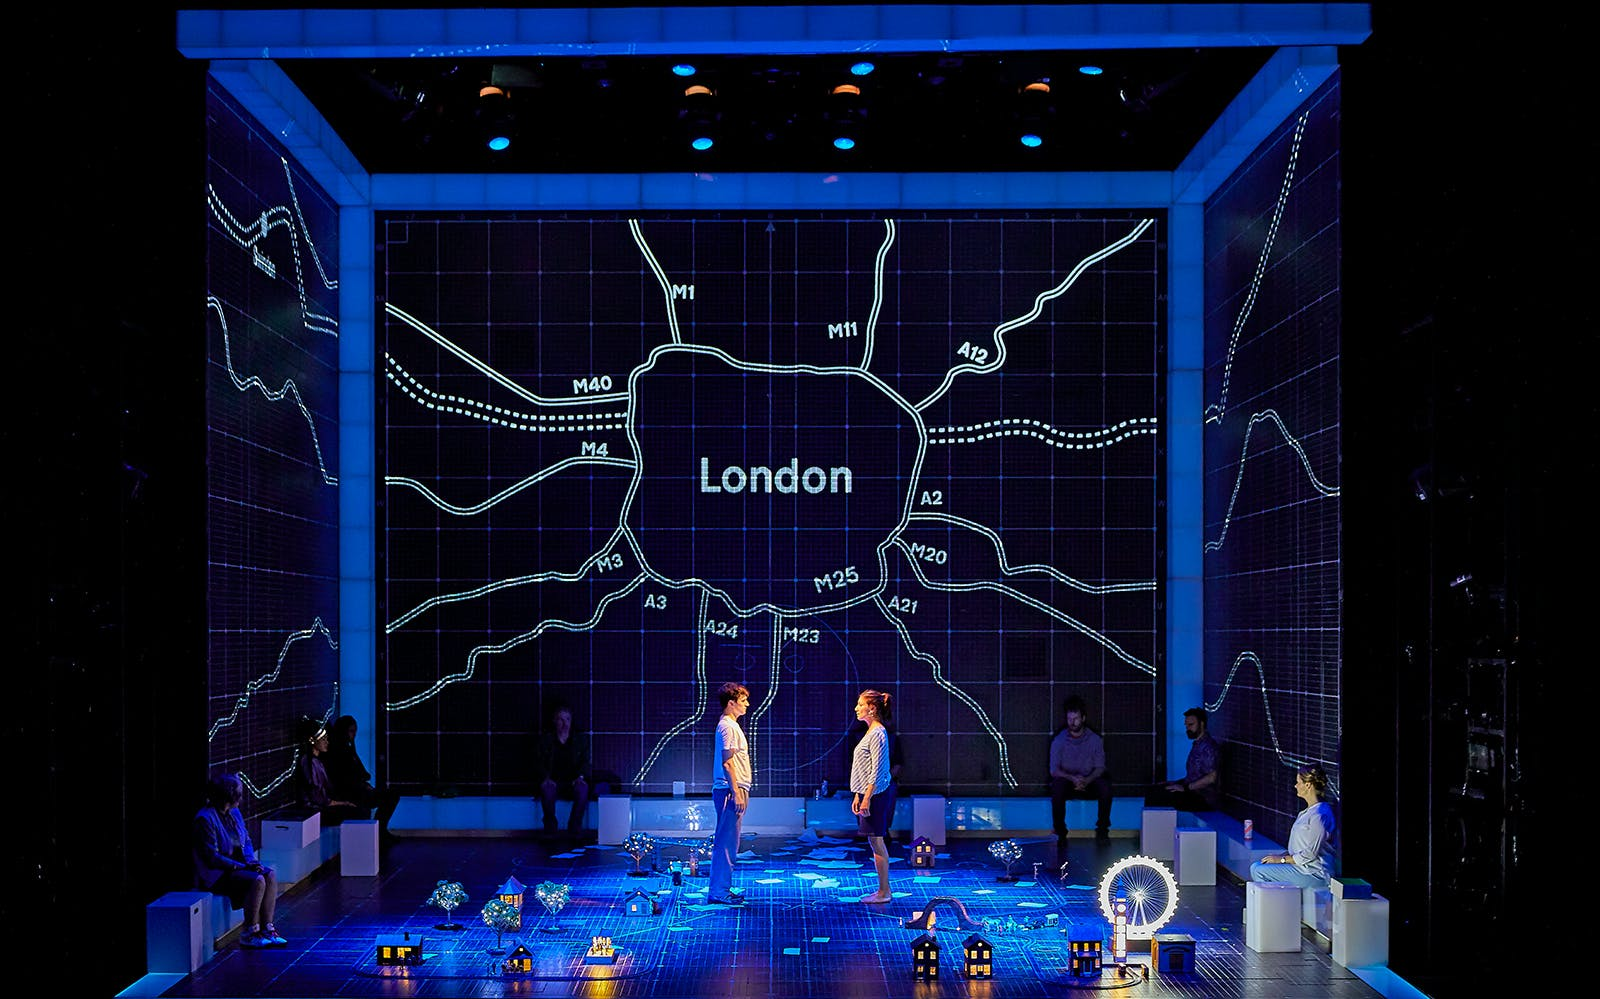 Best west end Shows - The Curious Incident